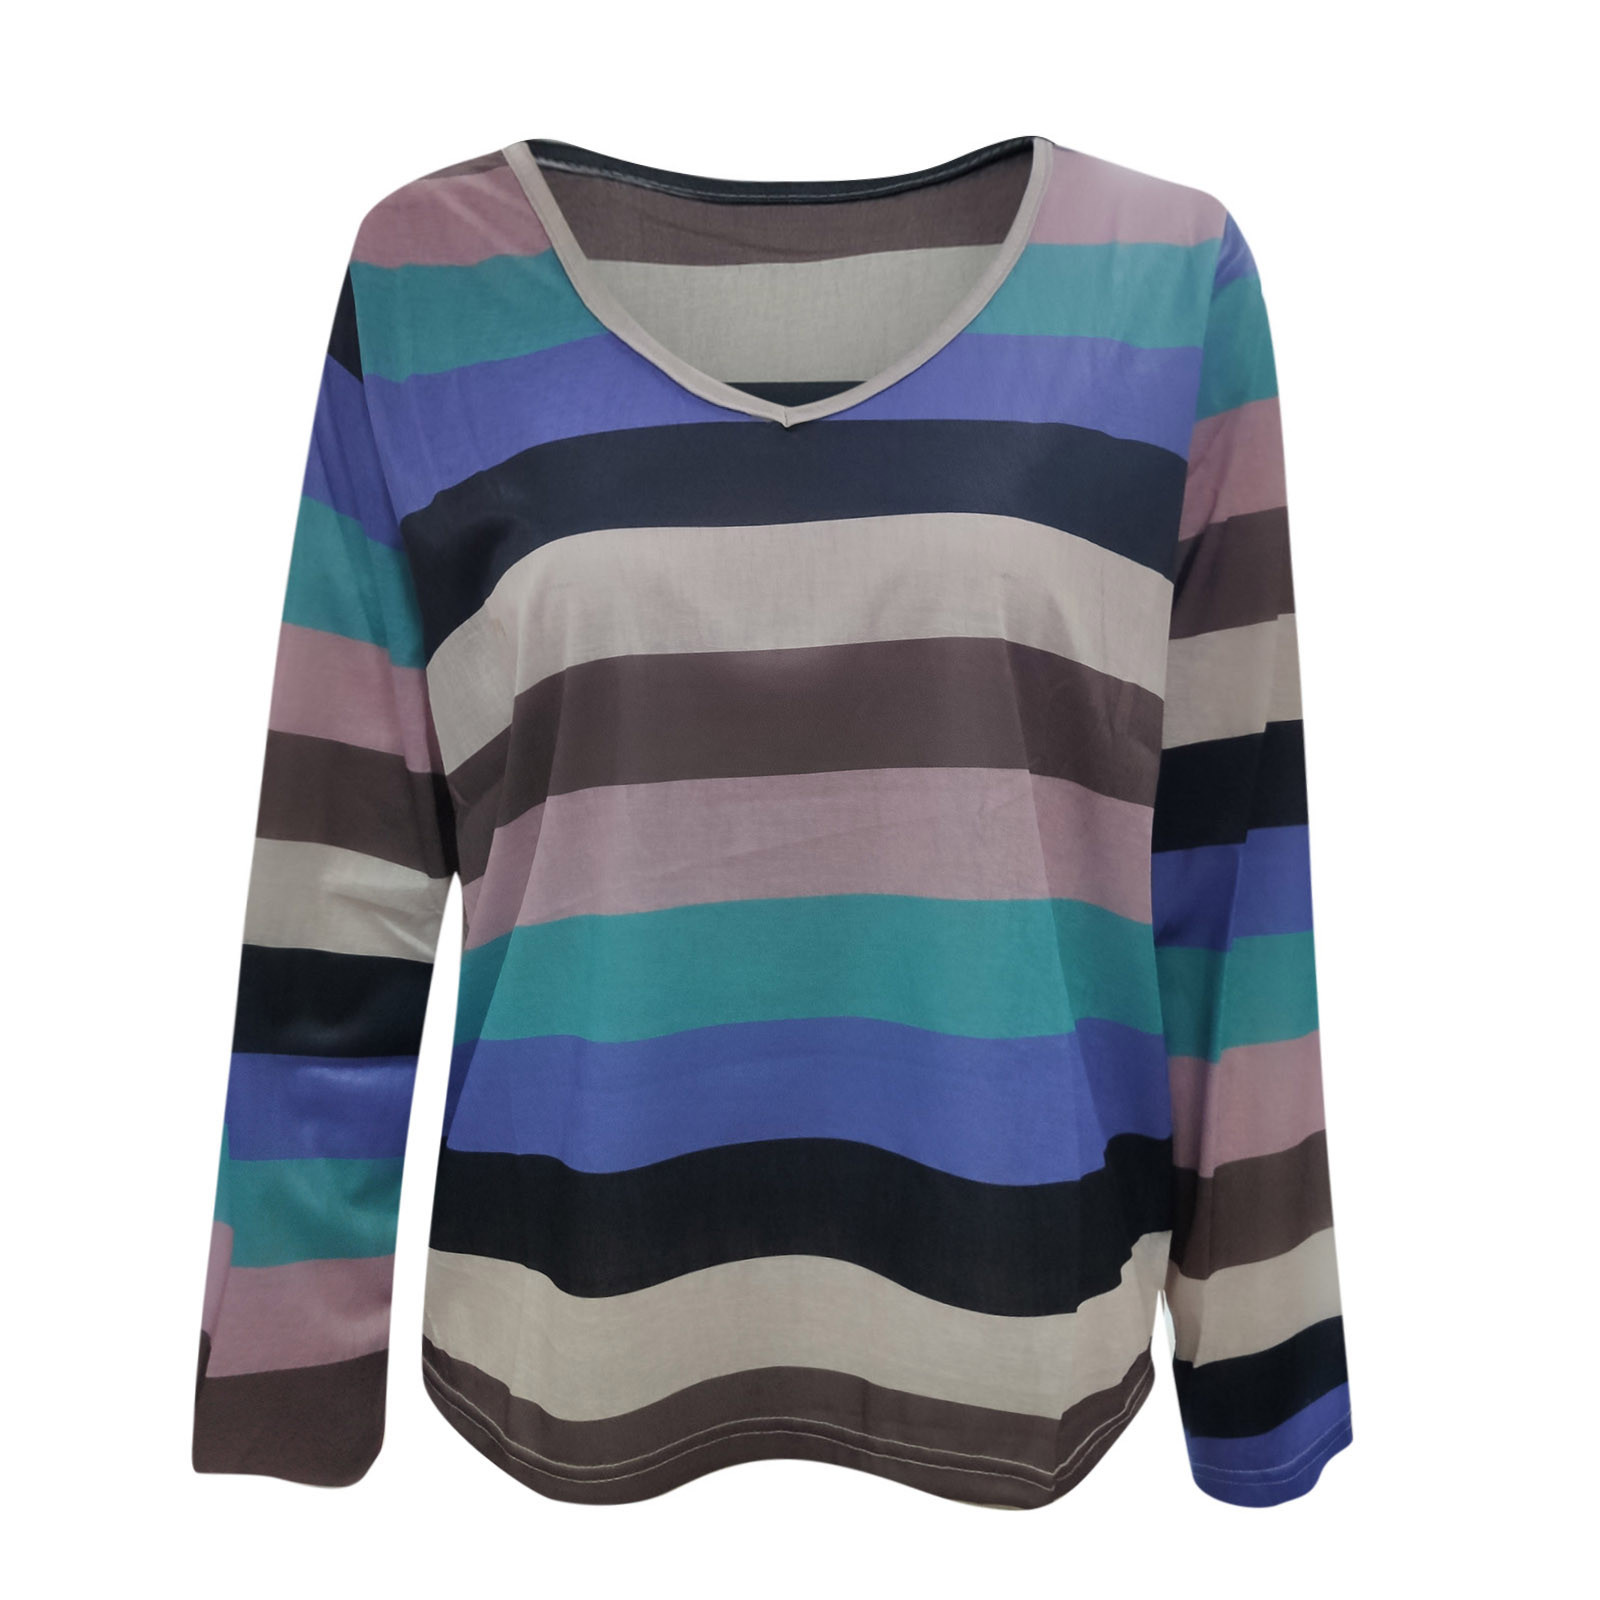 Fashion Rainbow Stripe Blouse For Women Autumn 2021 Multicolor V-neck Long Sleeve Female Blouse Tops Casual Loose Blusas Блузки